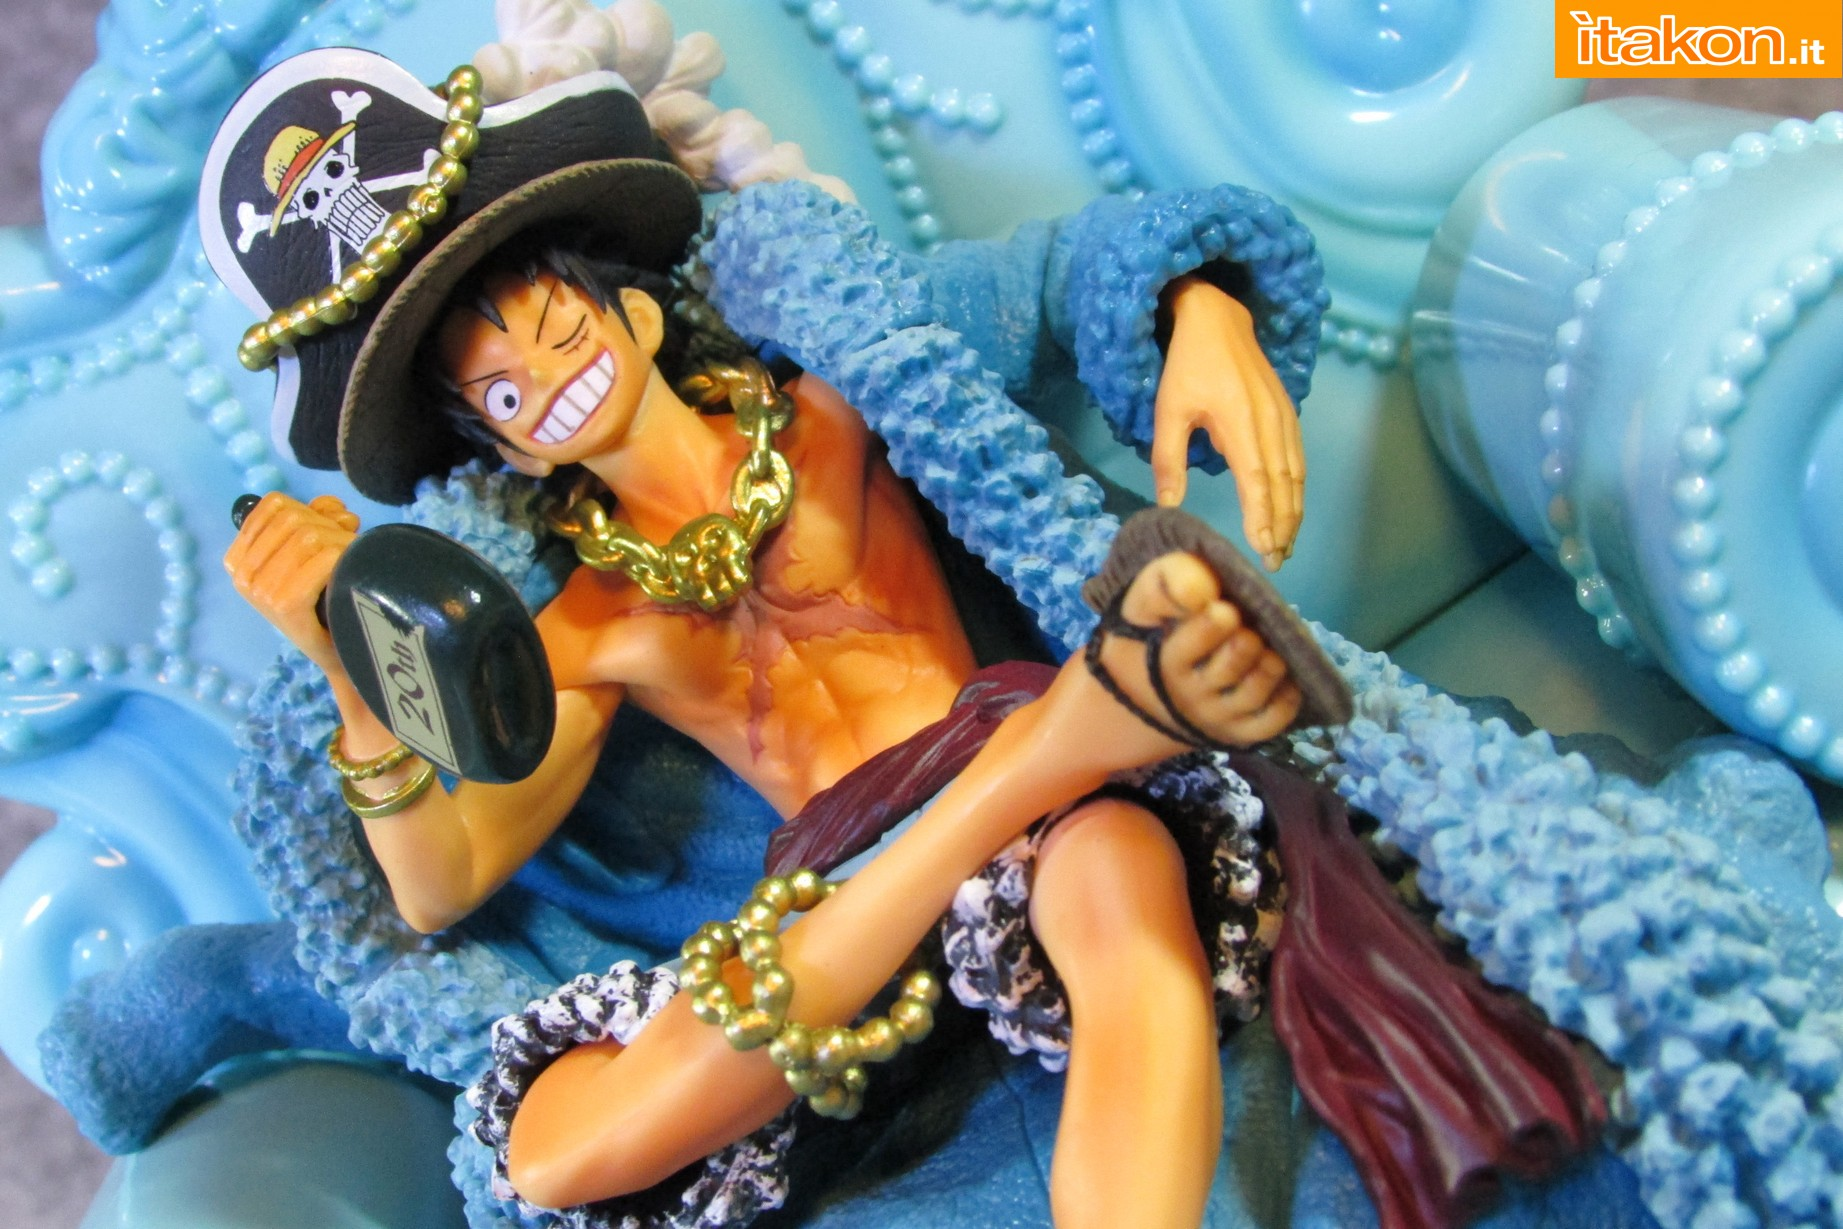 Link a Recensione Review Monkey D. Luffy One Piece 20th Anniversary ver. Figuarts ZERO di Bandai 13